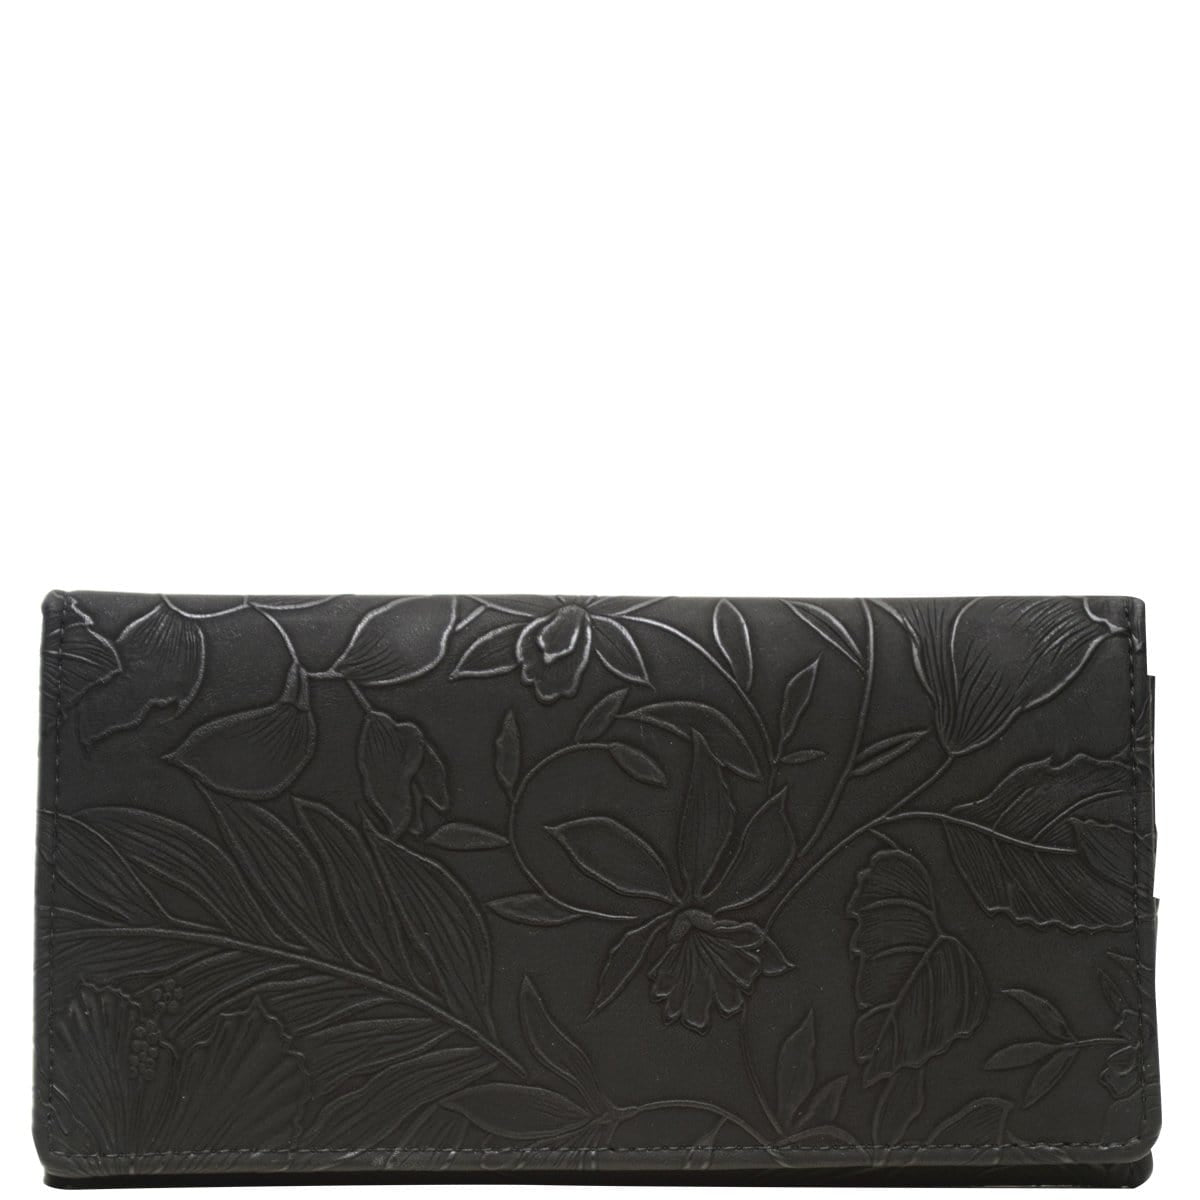 Wider Window Wallet - Black Emboss Tahiti